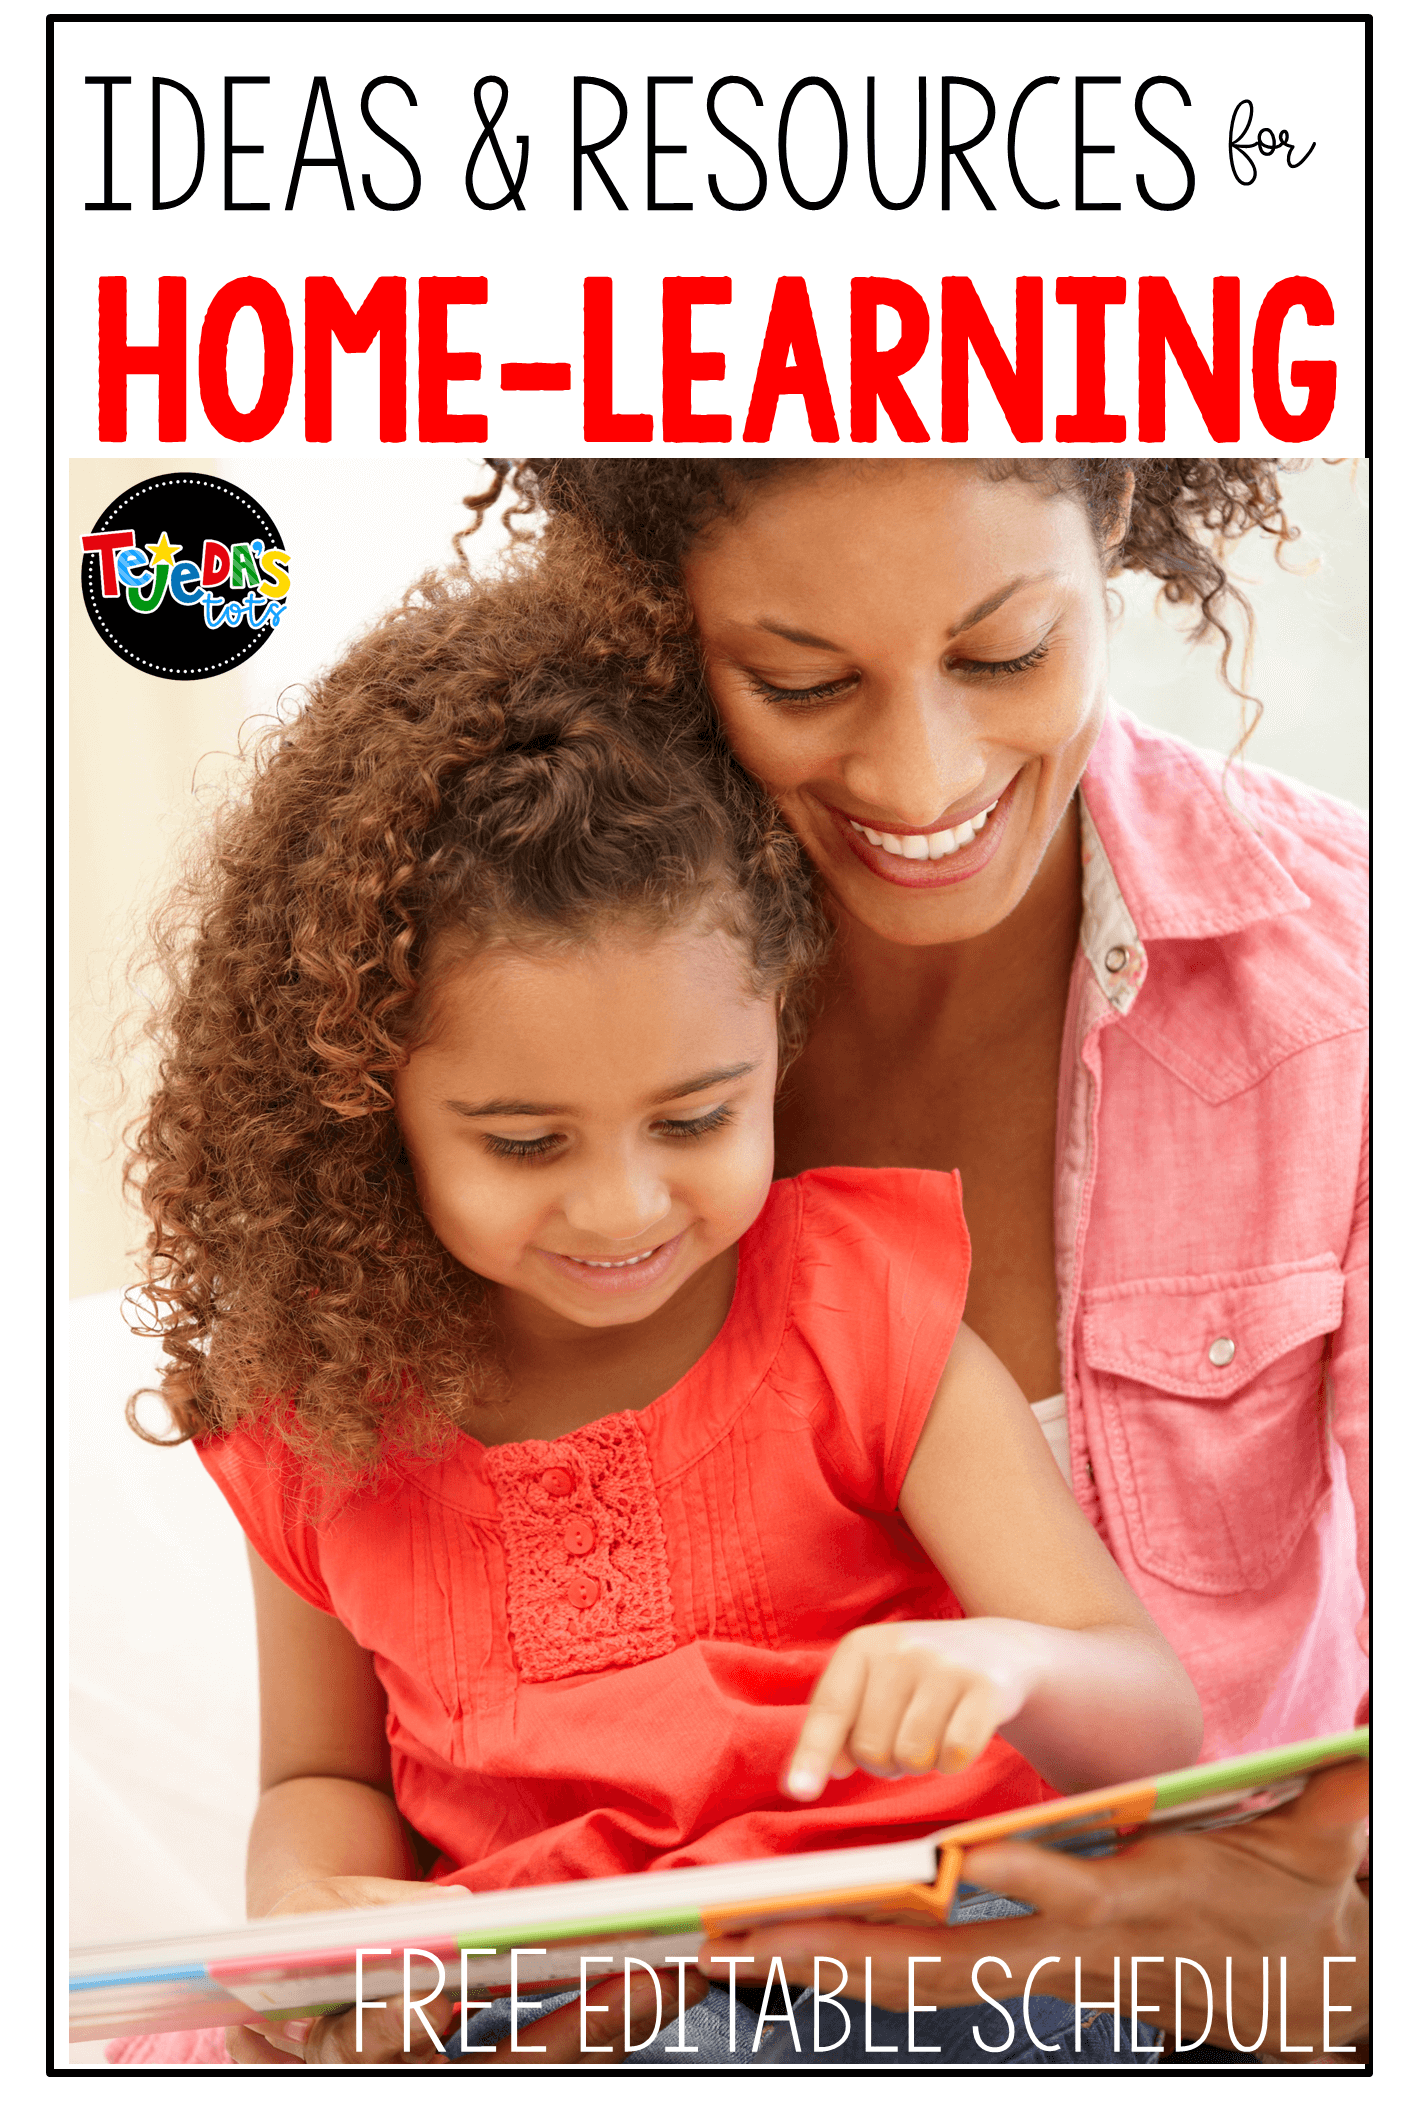 Home-Learning Resources for Teachers and Parents